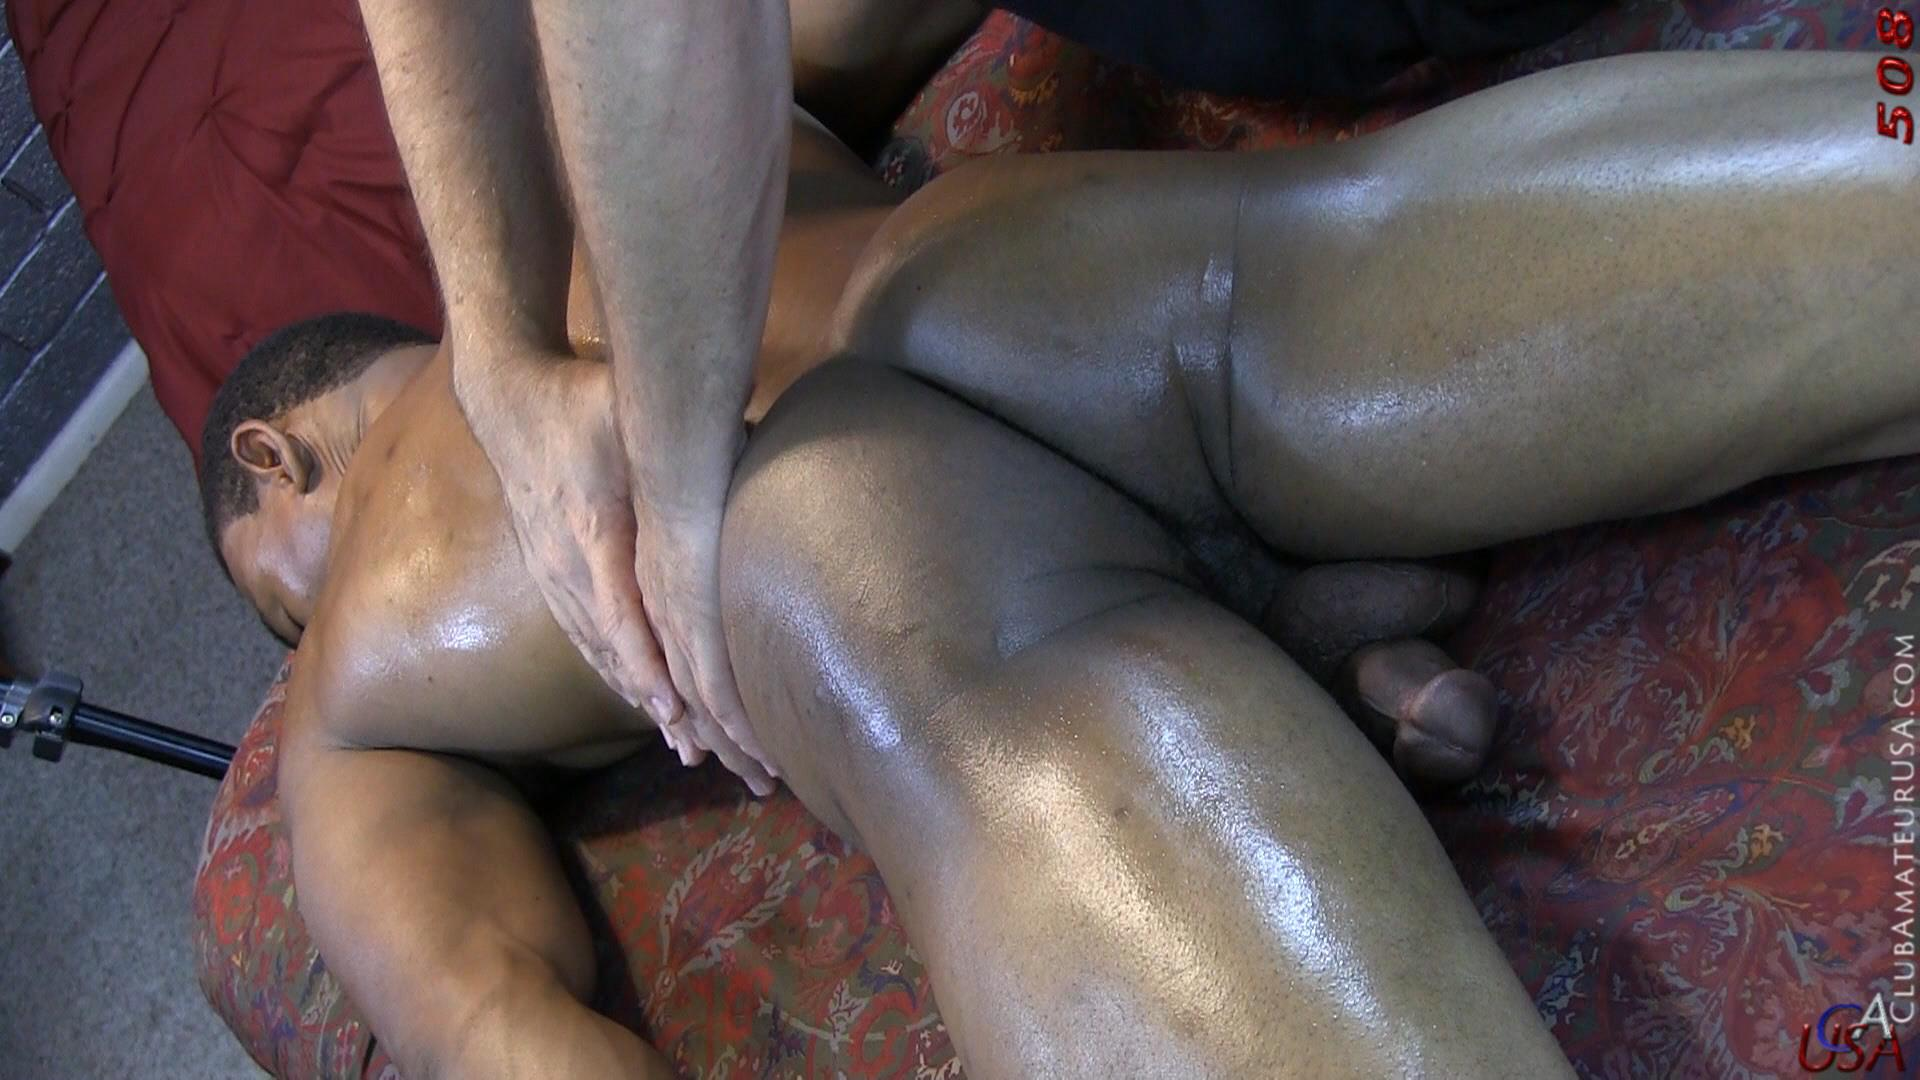 Club Amateur USA Gracen Straight Big Black Cock Getting Sucked With Cum Amateur Gay Porn 05